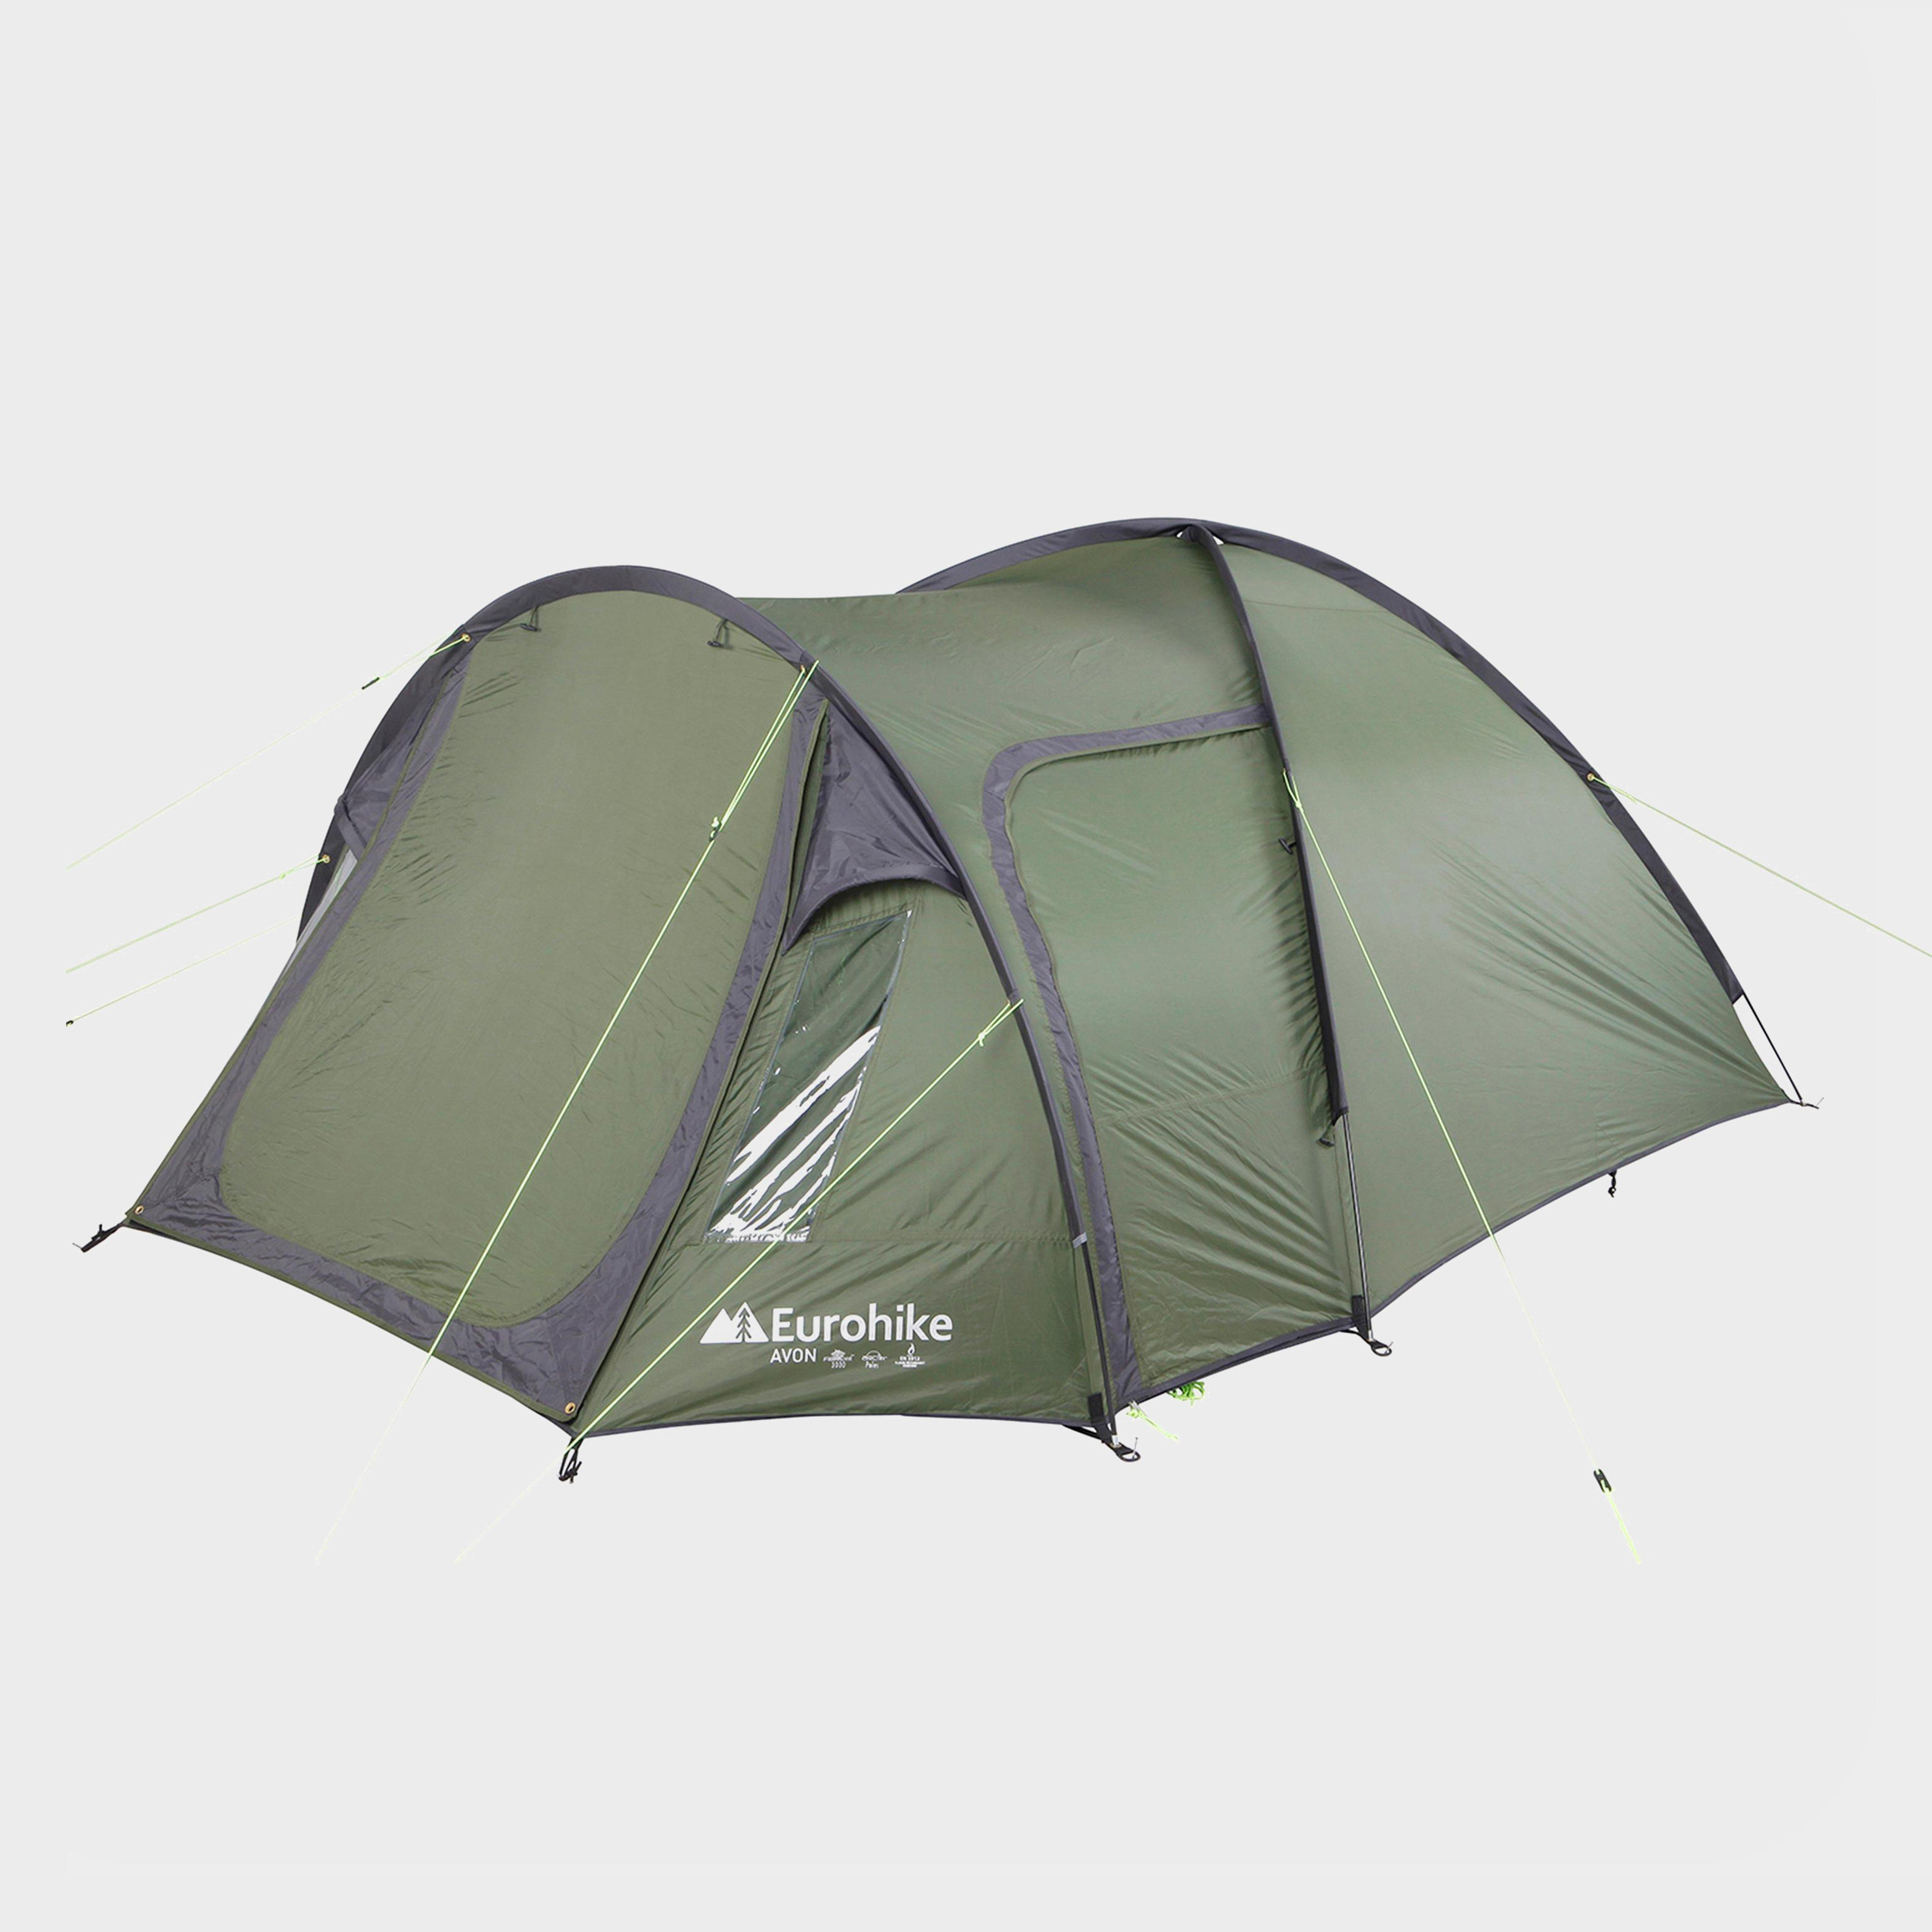 Eurohike Avon Dlx 3 Tent Buyer Compare Tent Prices